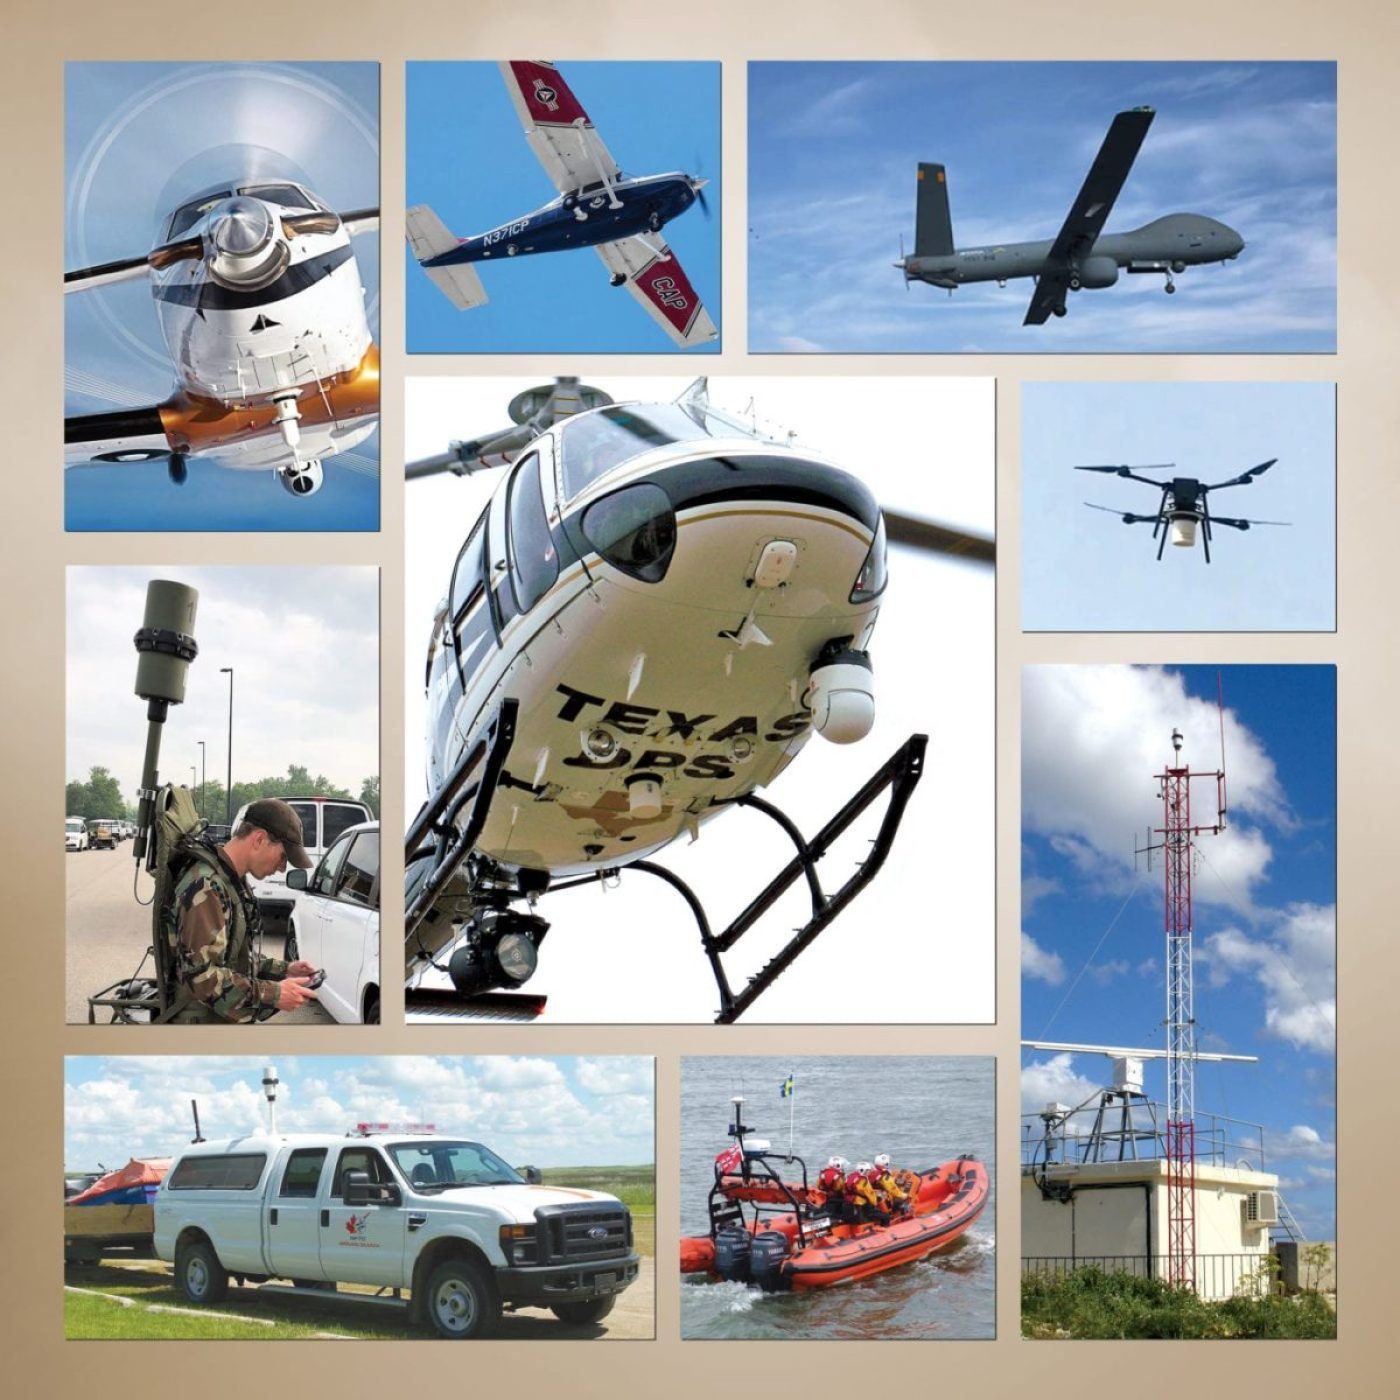 "RHOTHETA offers a comprehensive line of VHF/UHF radio direction finders for air traffic control, search and rescue, and vessel traffic services. The product lineup includes units designed for installation on shore-based towers, manned and unmanned aircraft, vessels, motor vehicles, as well as a ""manpack"" configuration for portable use. (ROTHETA image)"